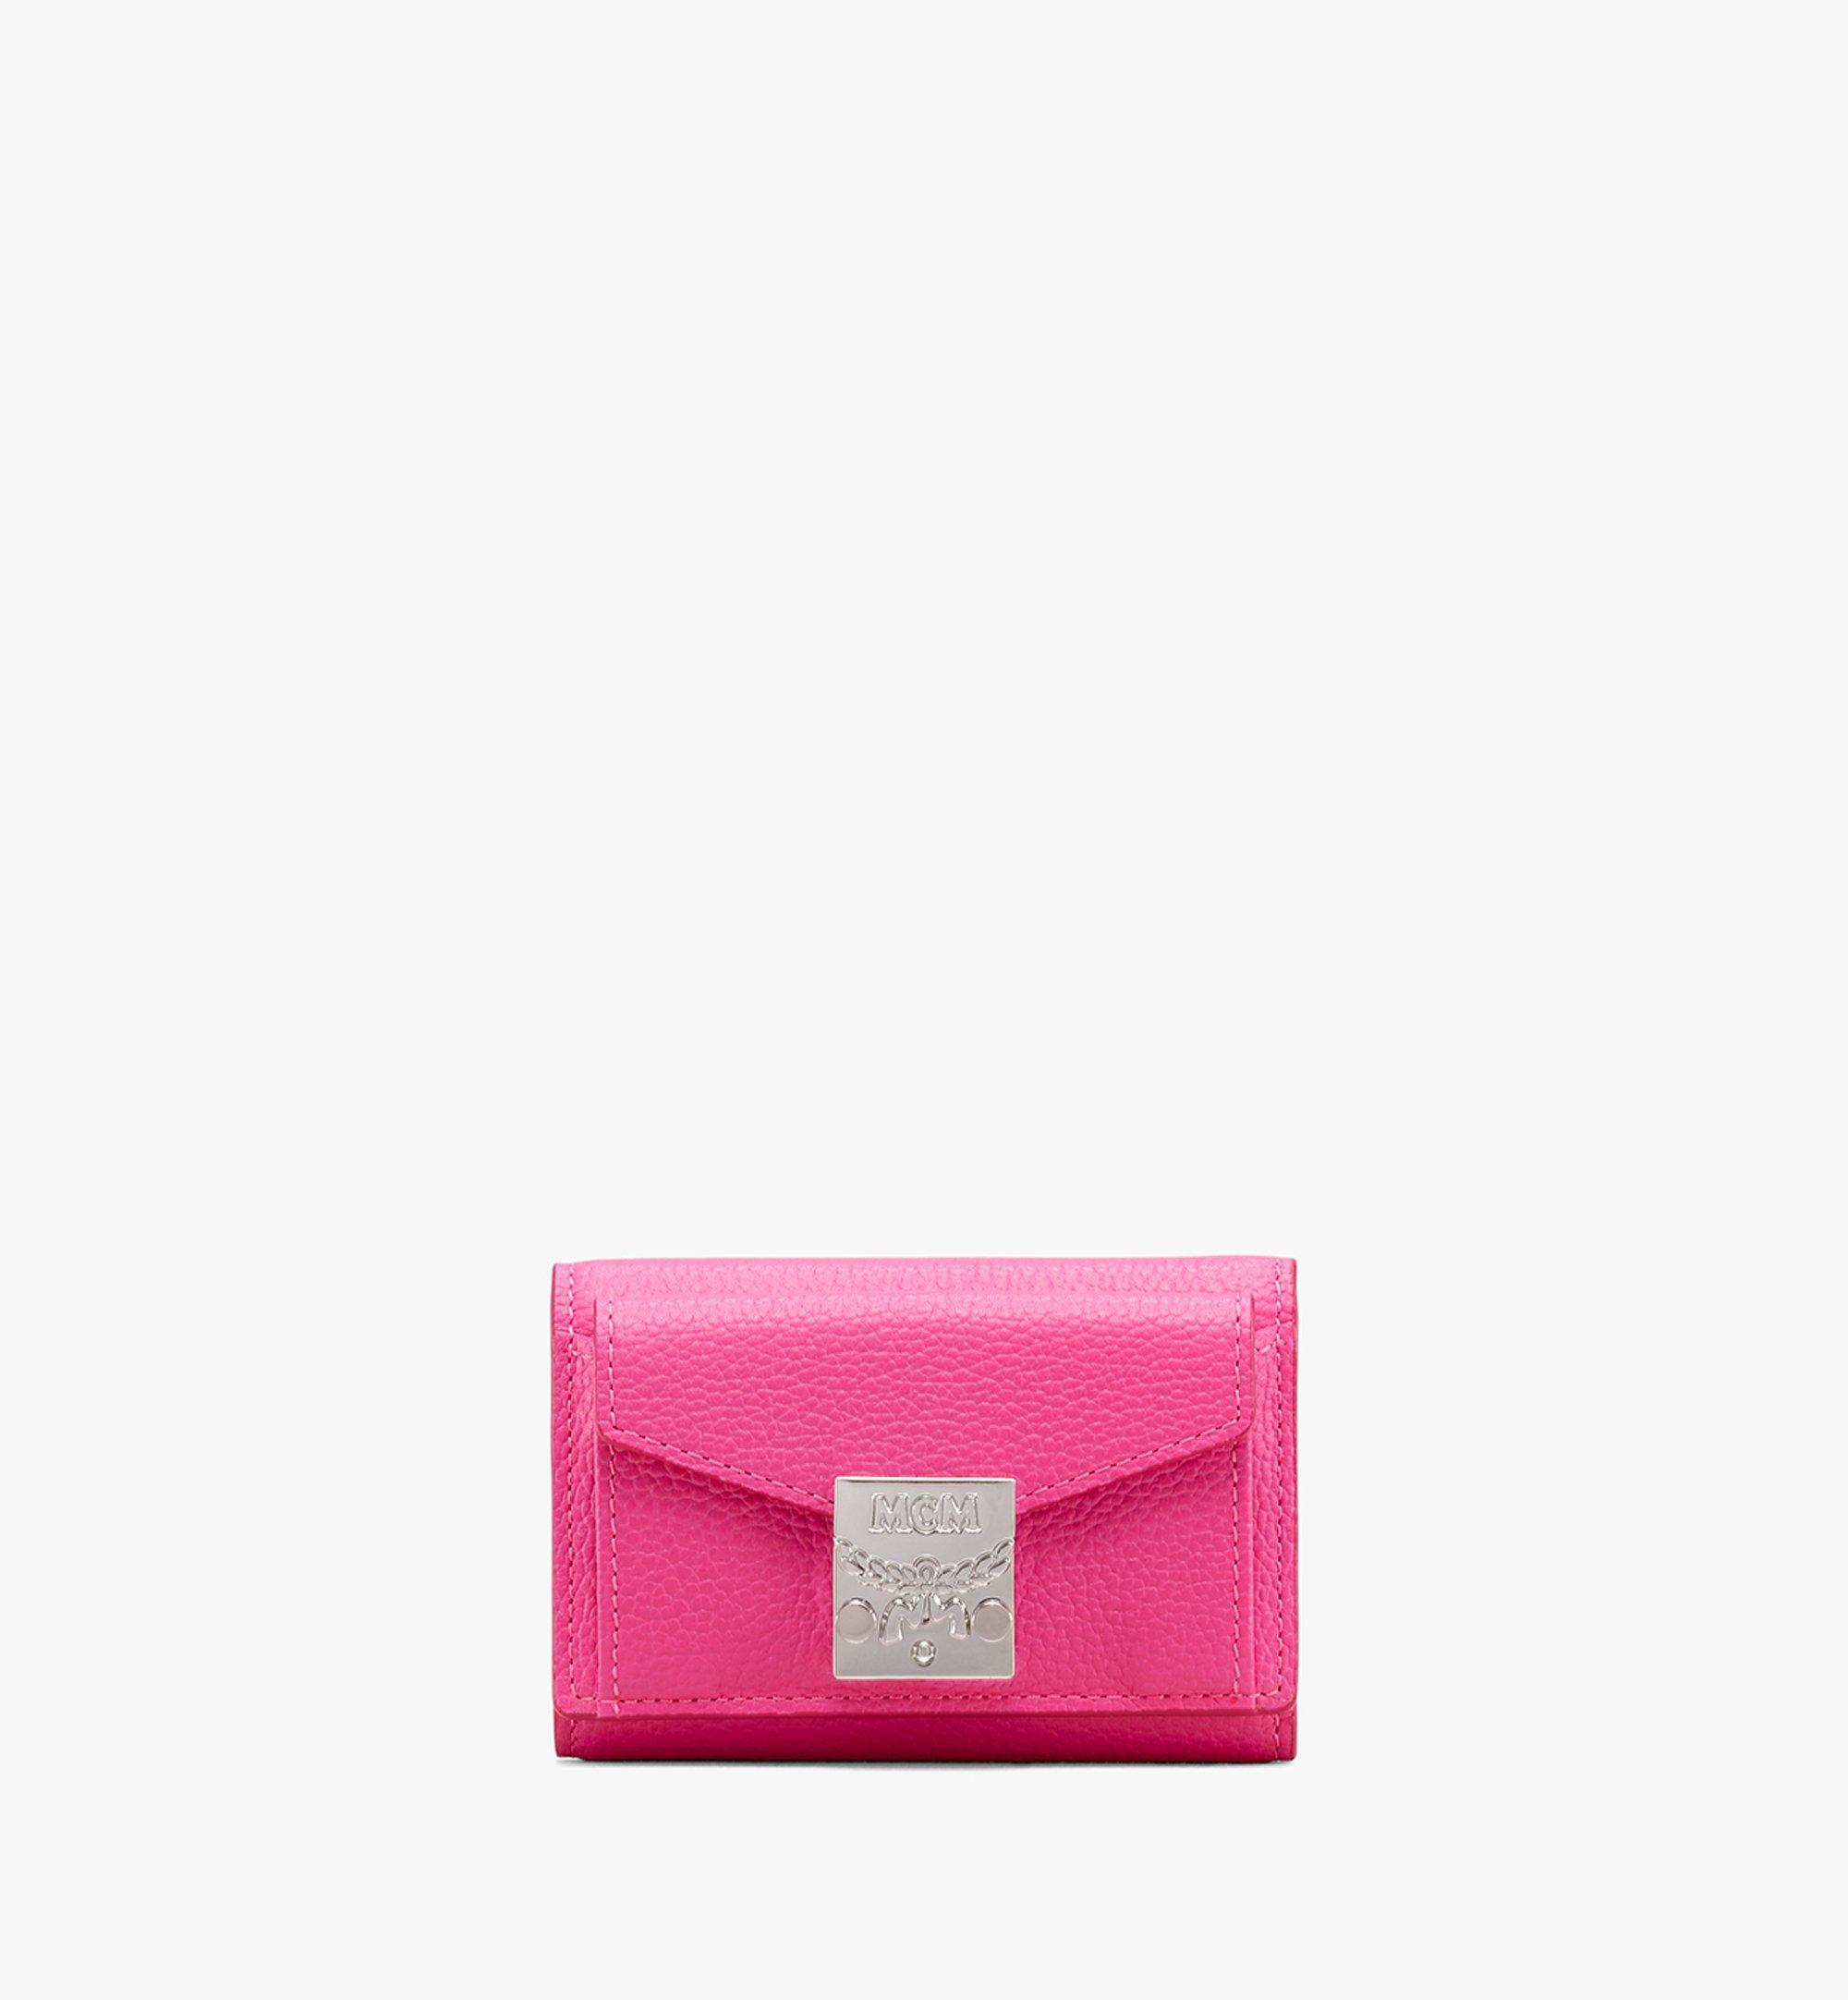 MCM Patricia Three-Fold Wallet in Park Avenue Leather Pink MYA9APA67QS001 Alternate View 1